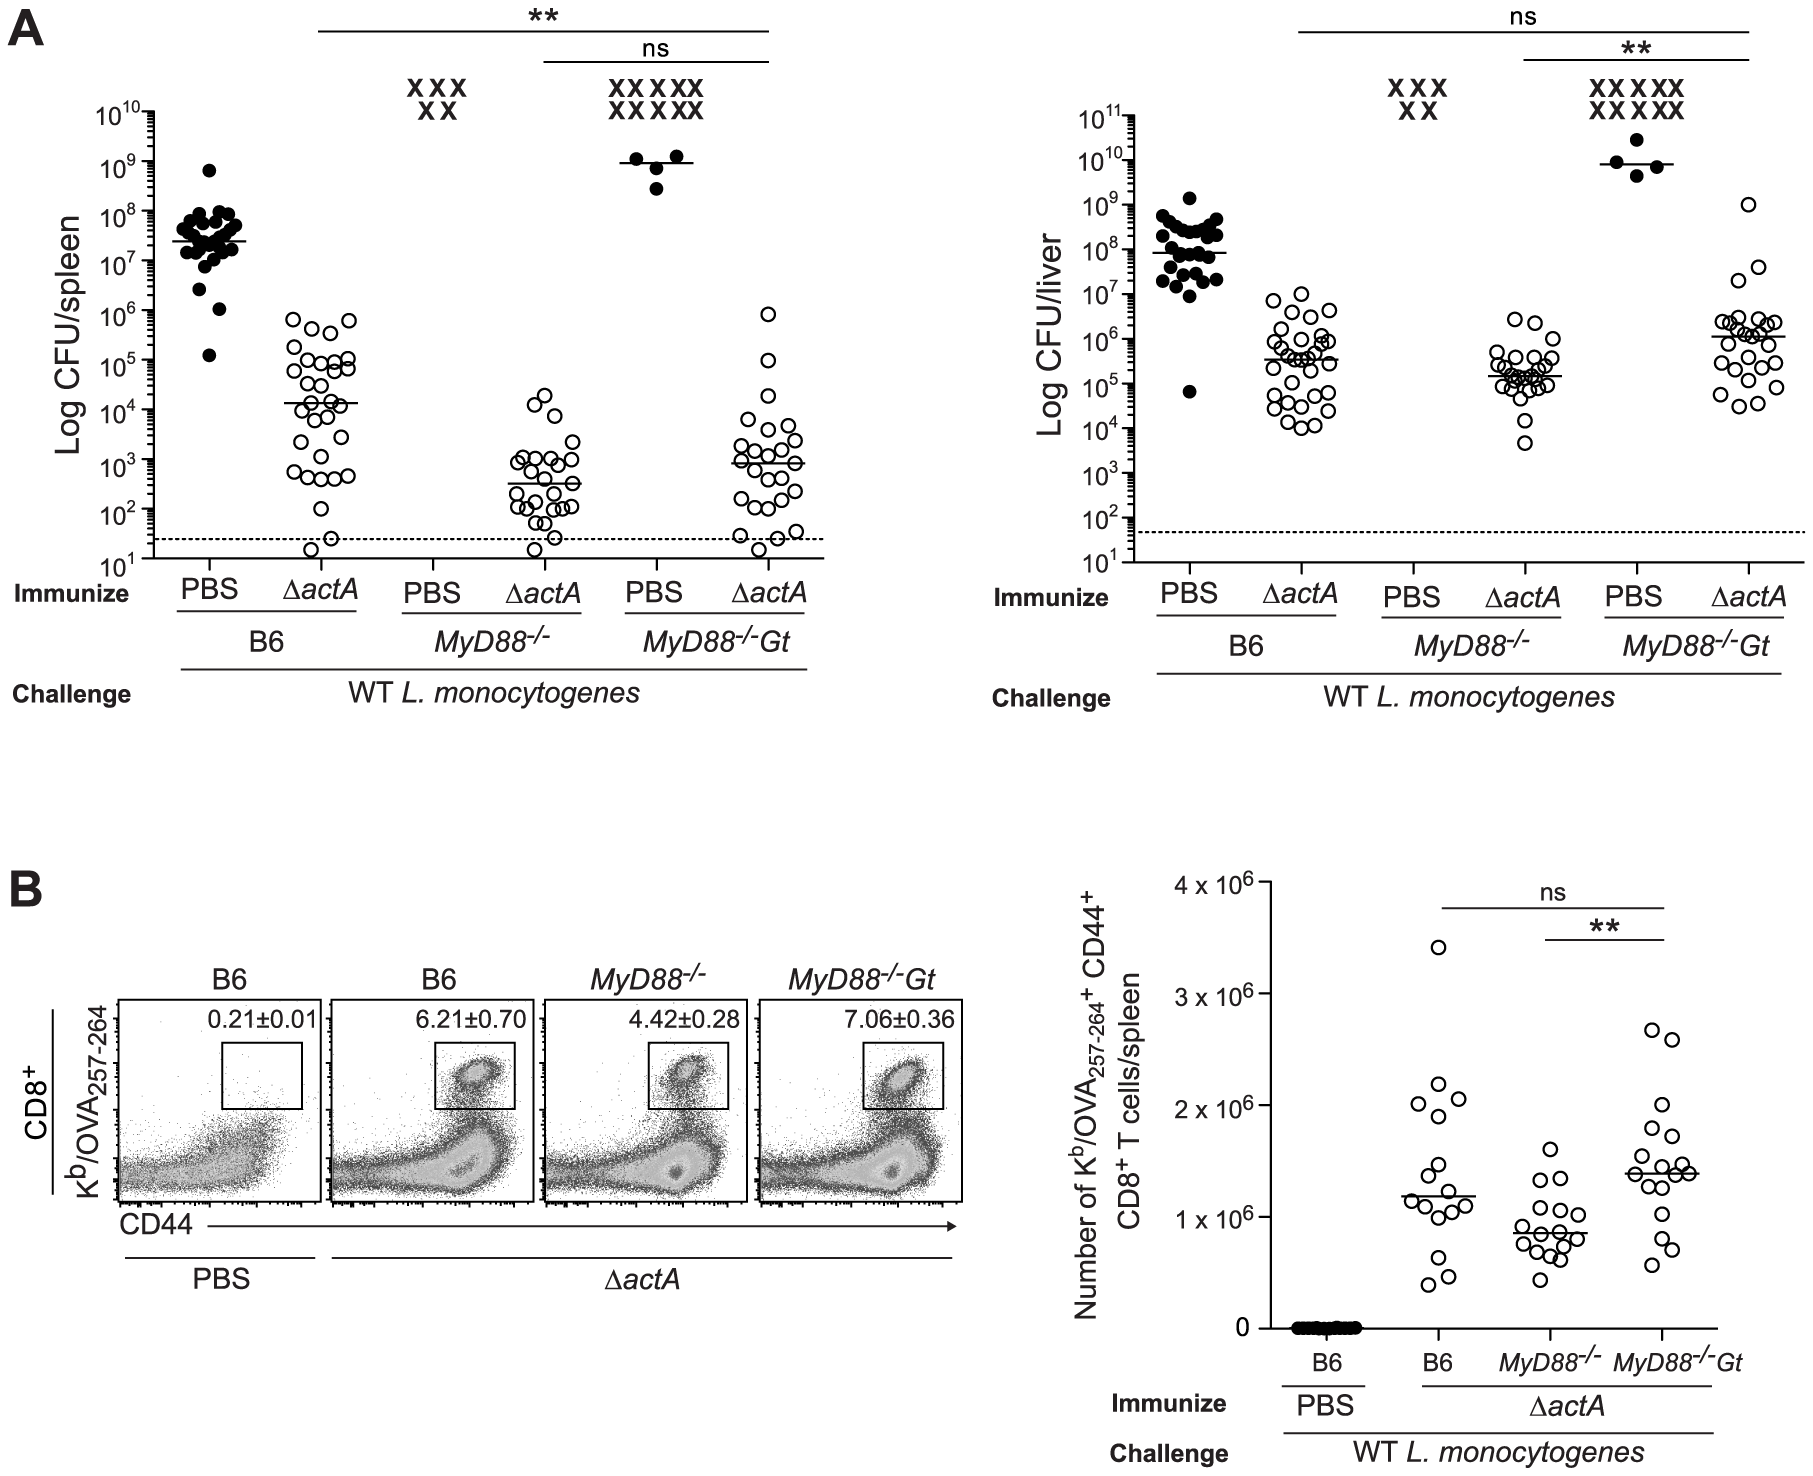 Mice lacking MyD88 and STING are protected from secondary challenge.